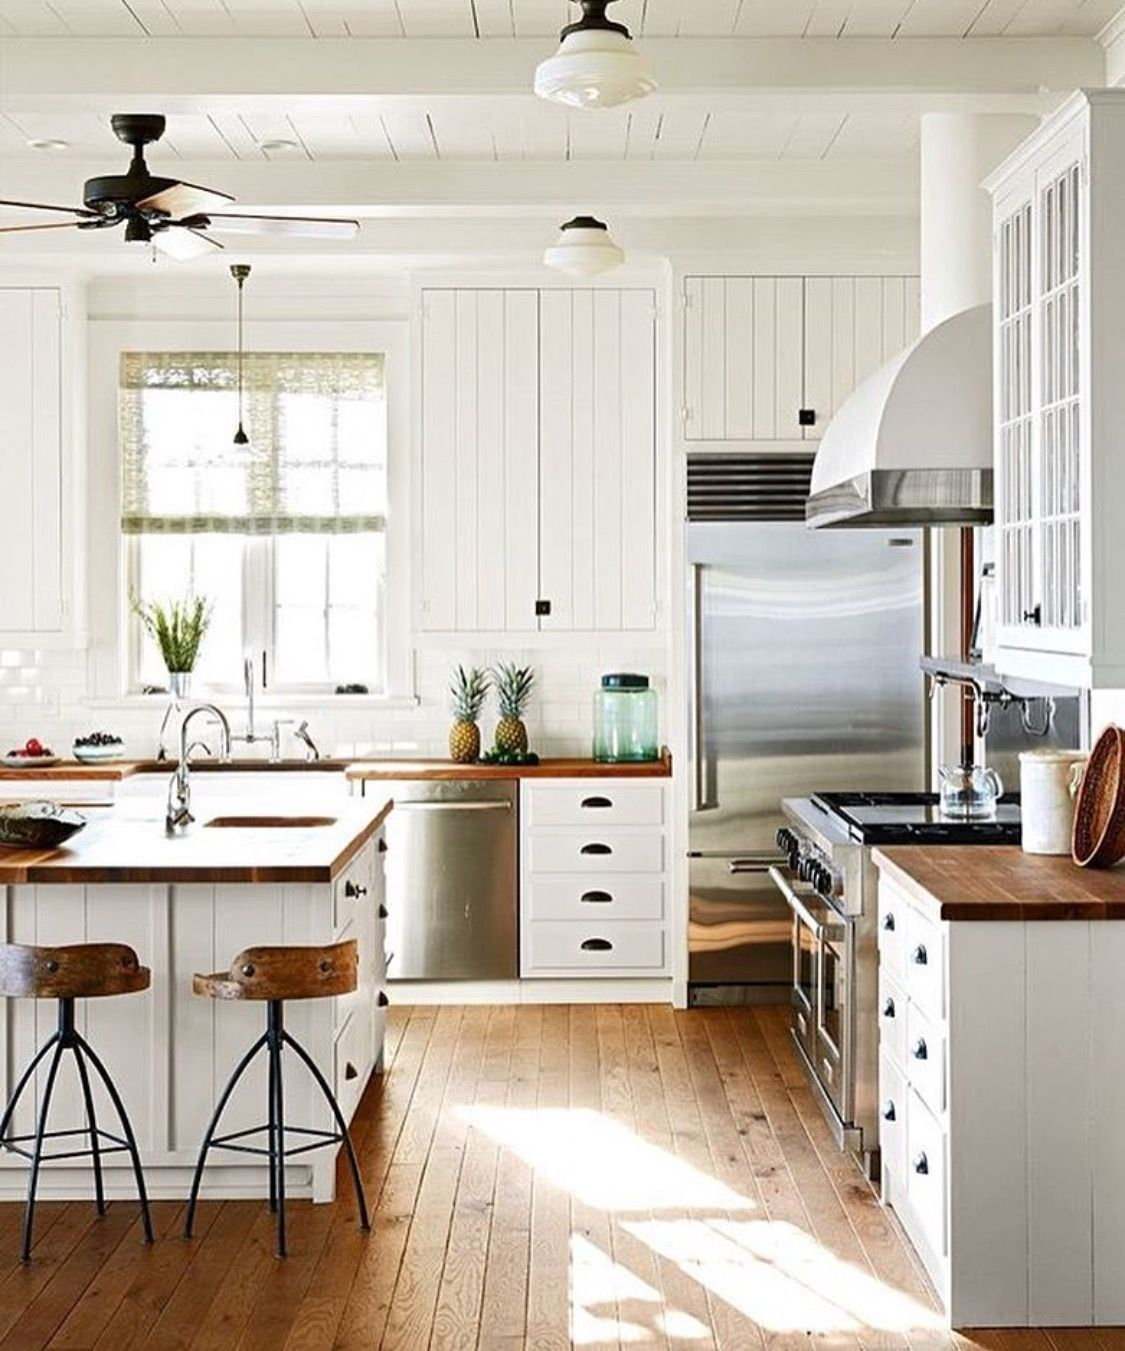 Pin by Nicole Hewin on Build?! | Pinterest | Kitchens, Kitchen ...